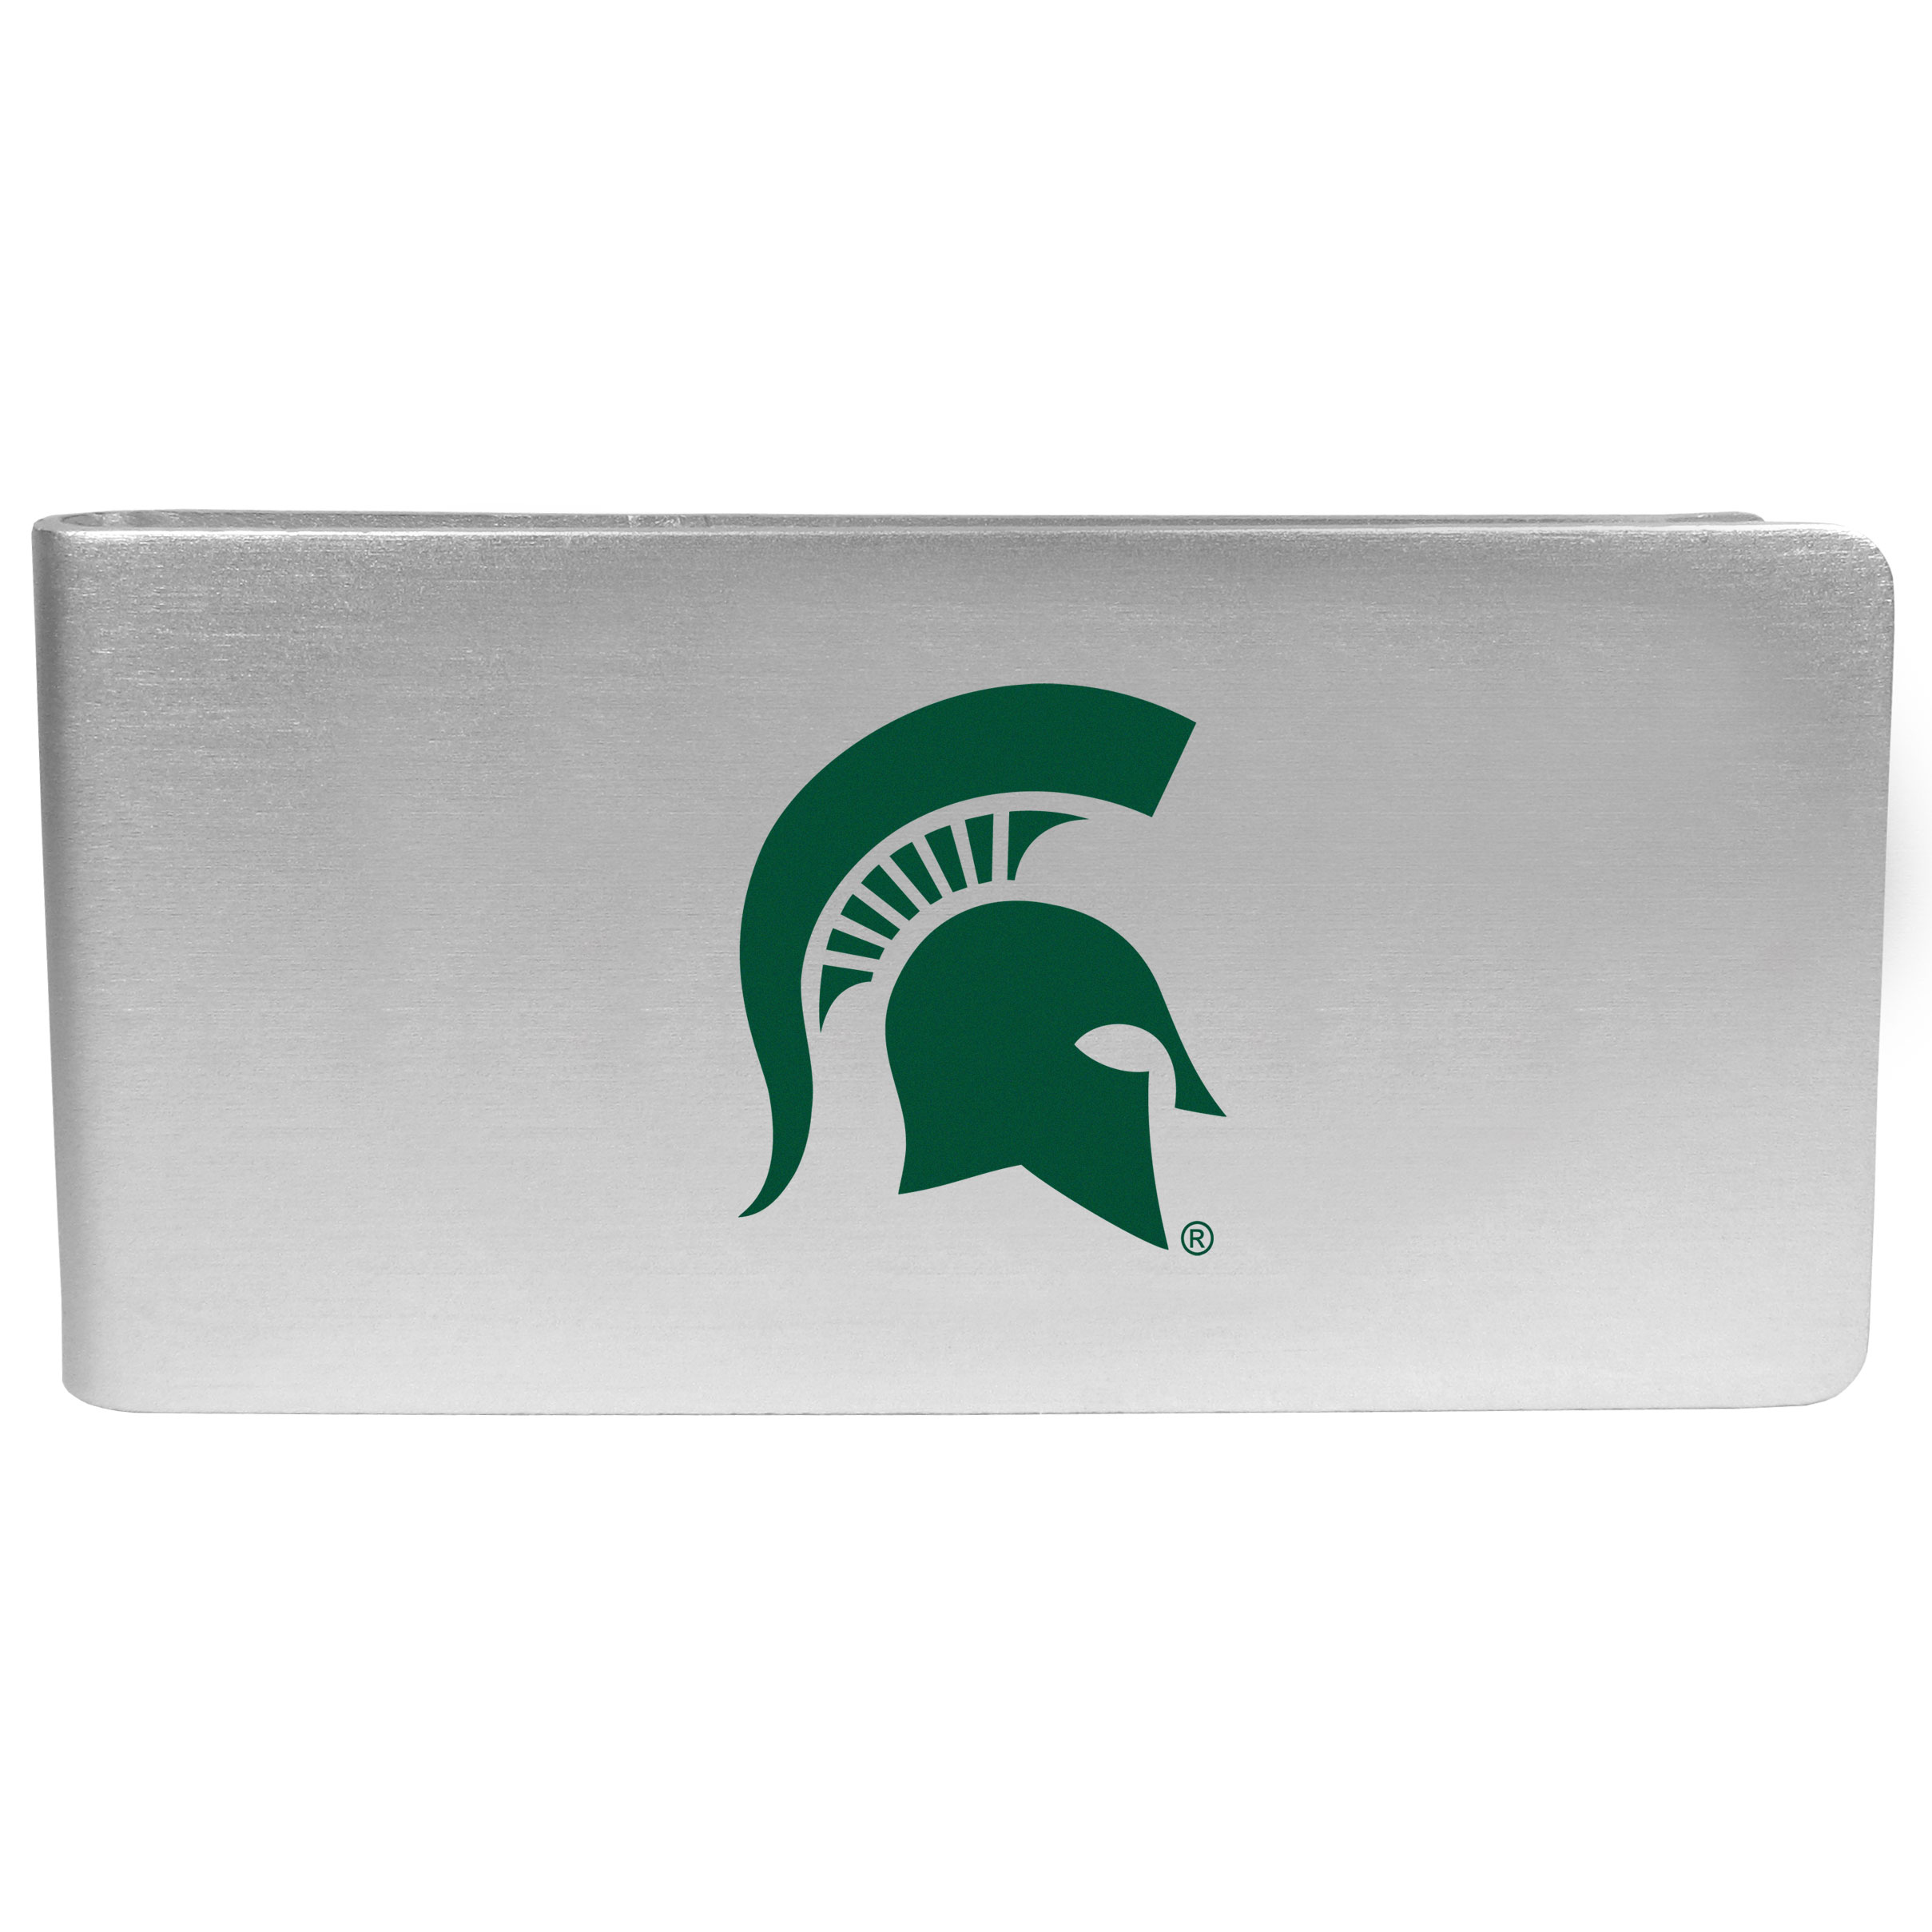 Michigan St. Spartans Logo Money Clip - Our brushed metal money clip has classic style and functionality. The attractive clip features the Michigan St. Spartans logo expertly printed on front.